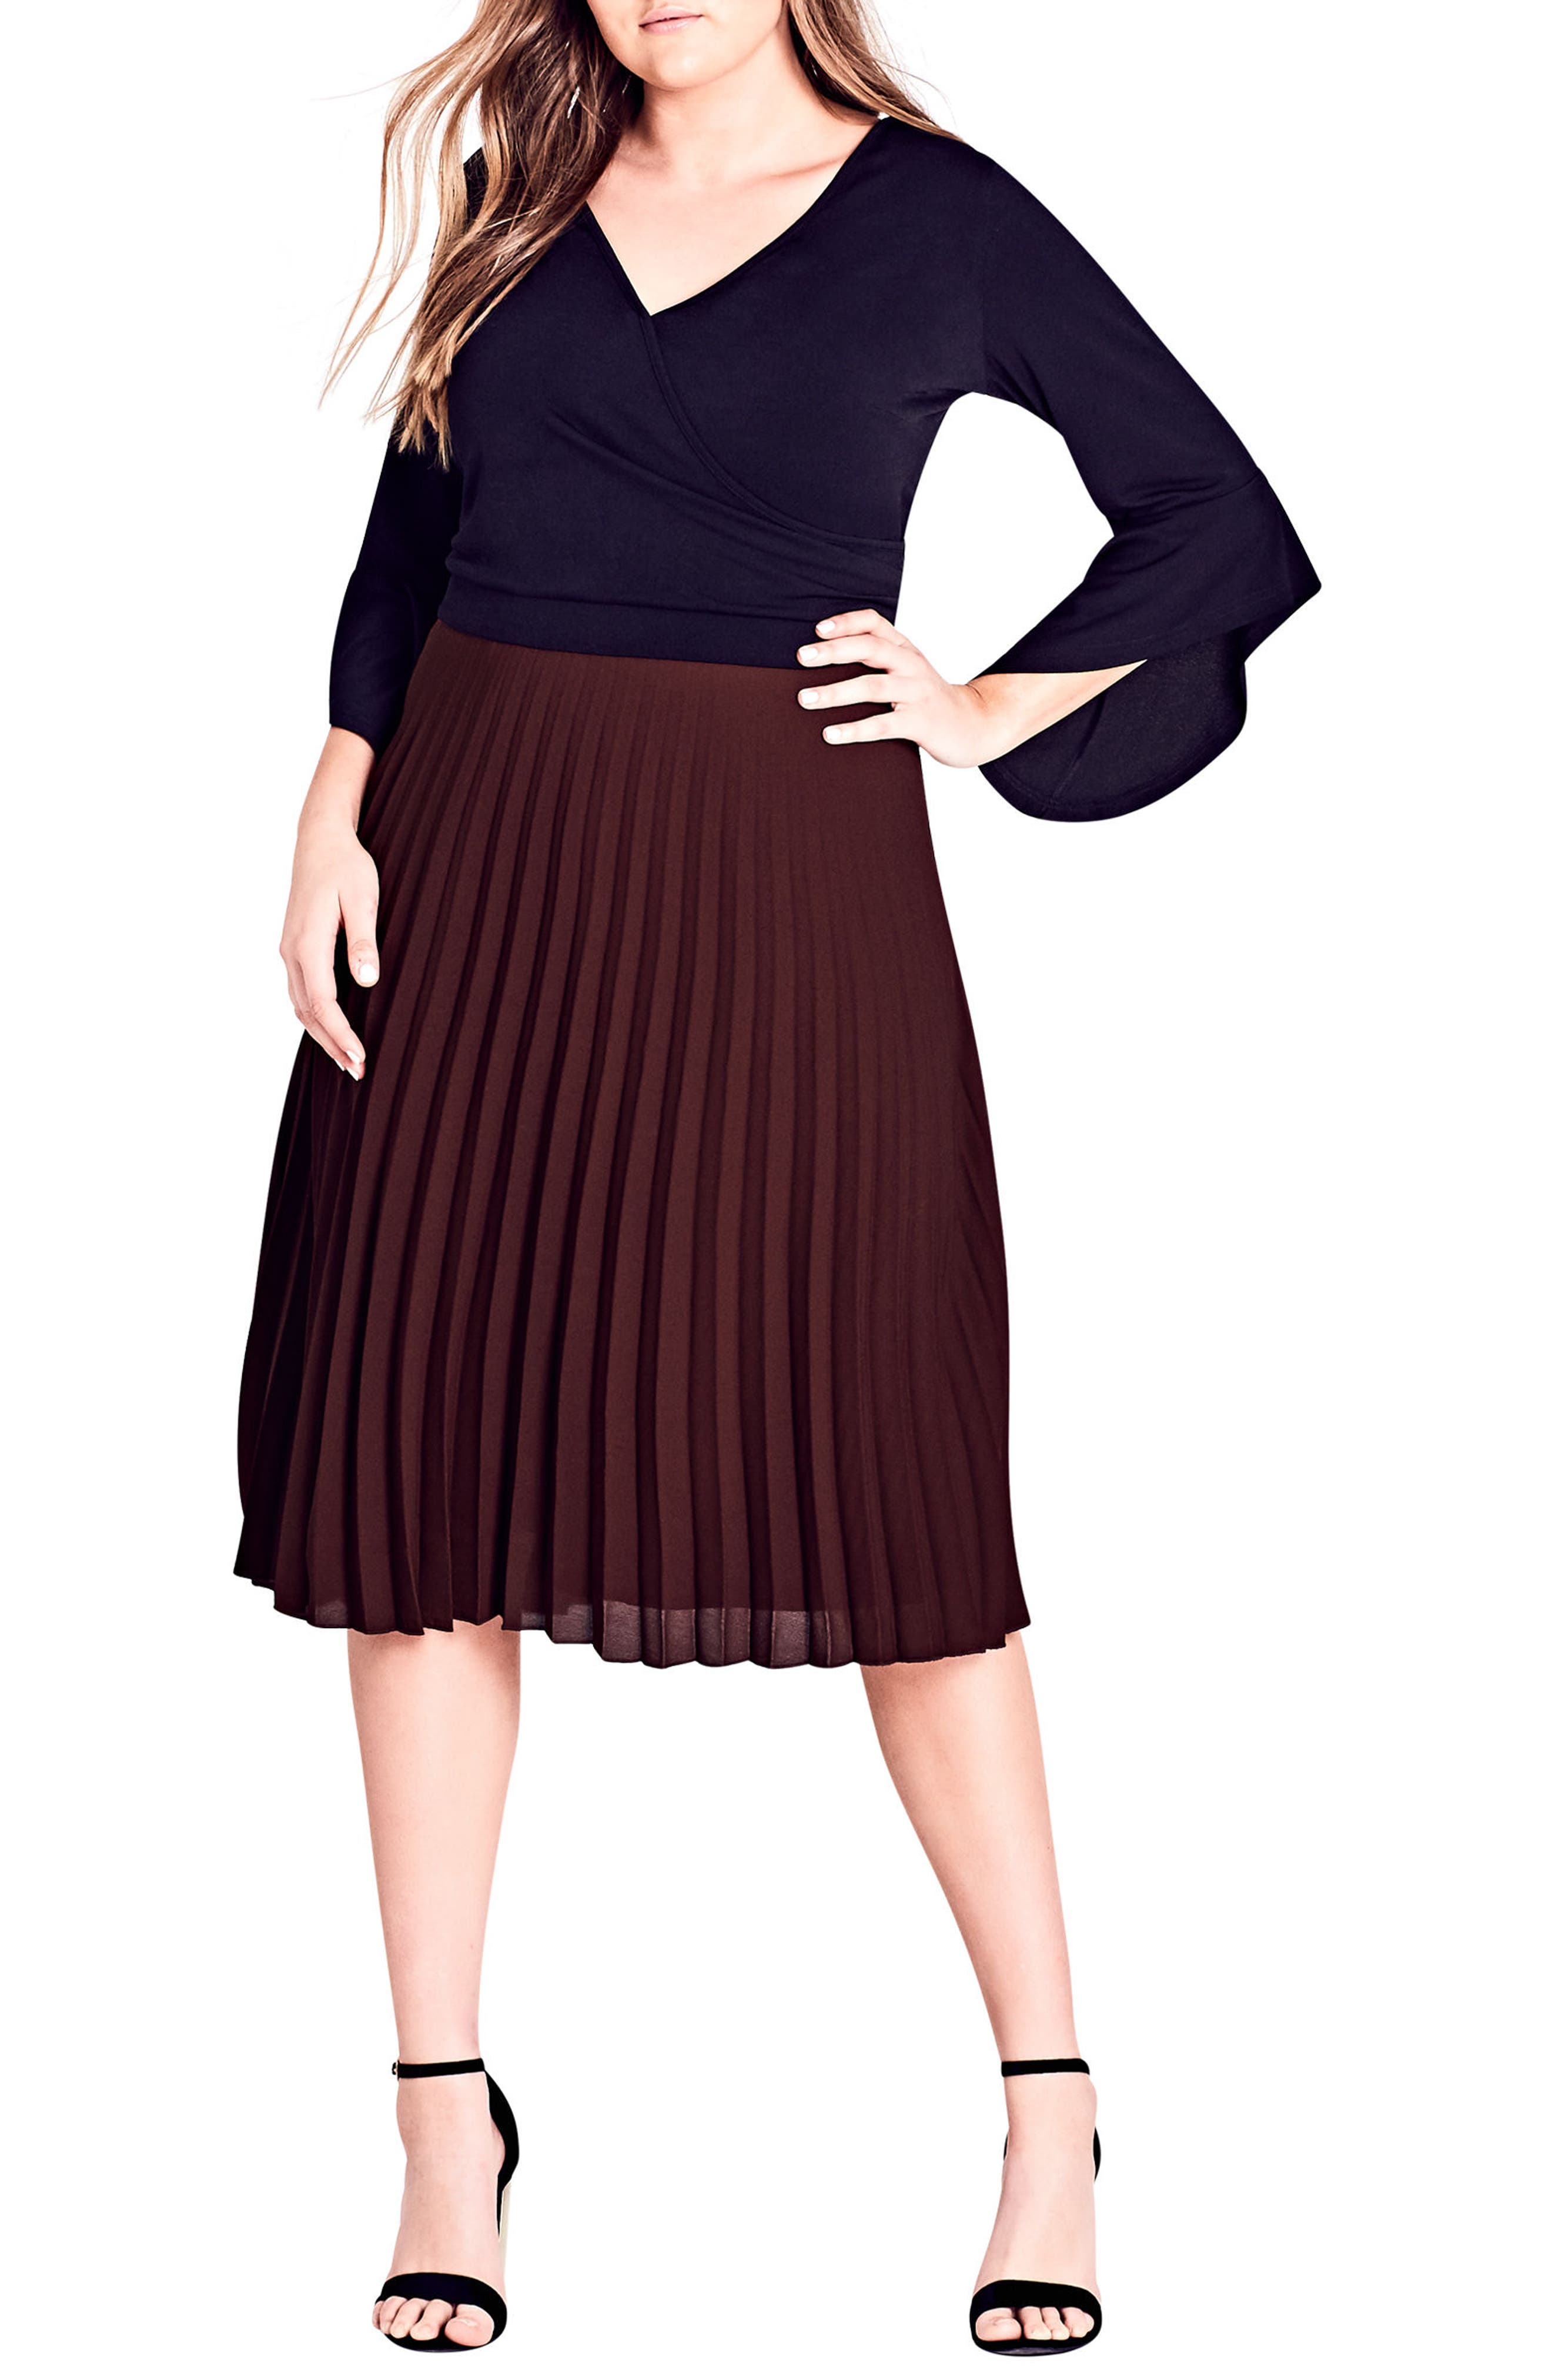 Main Image - City Chic Cascade Sleeve Top (Plus Size)